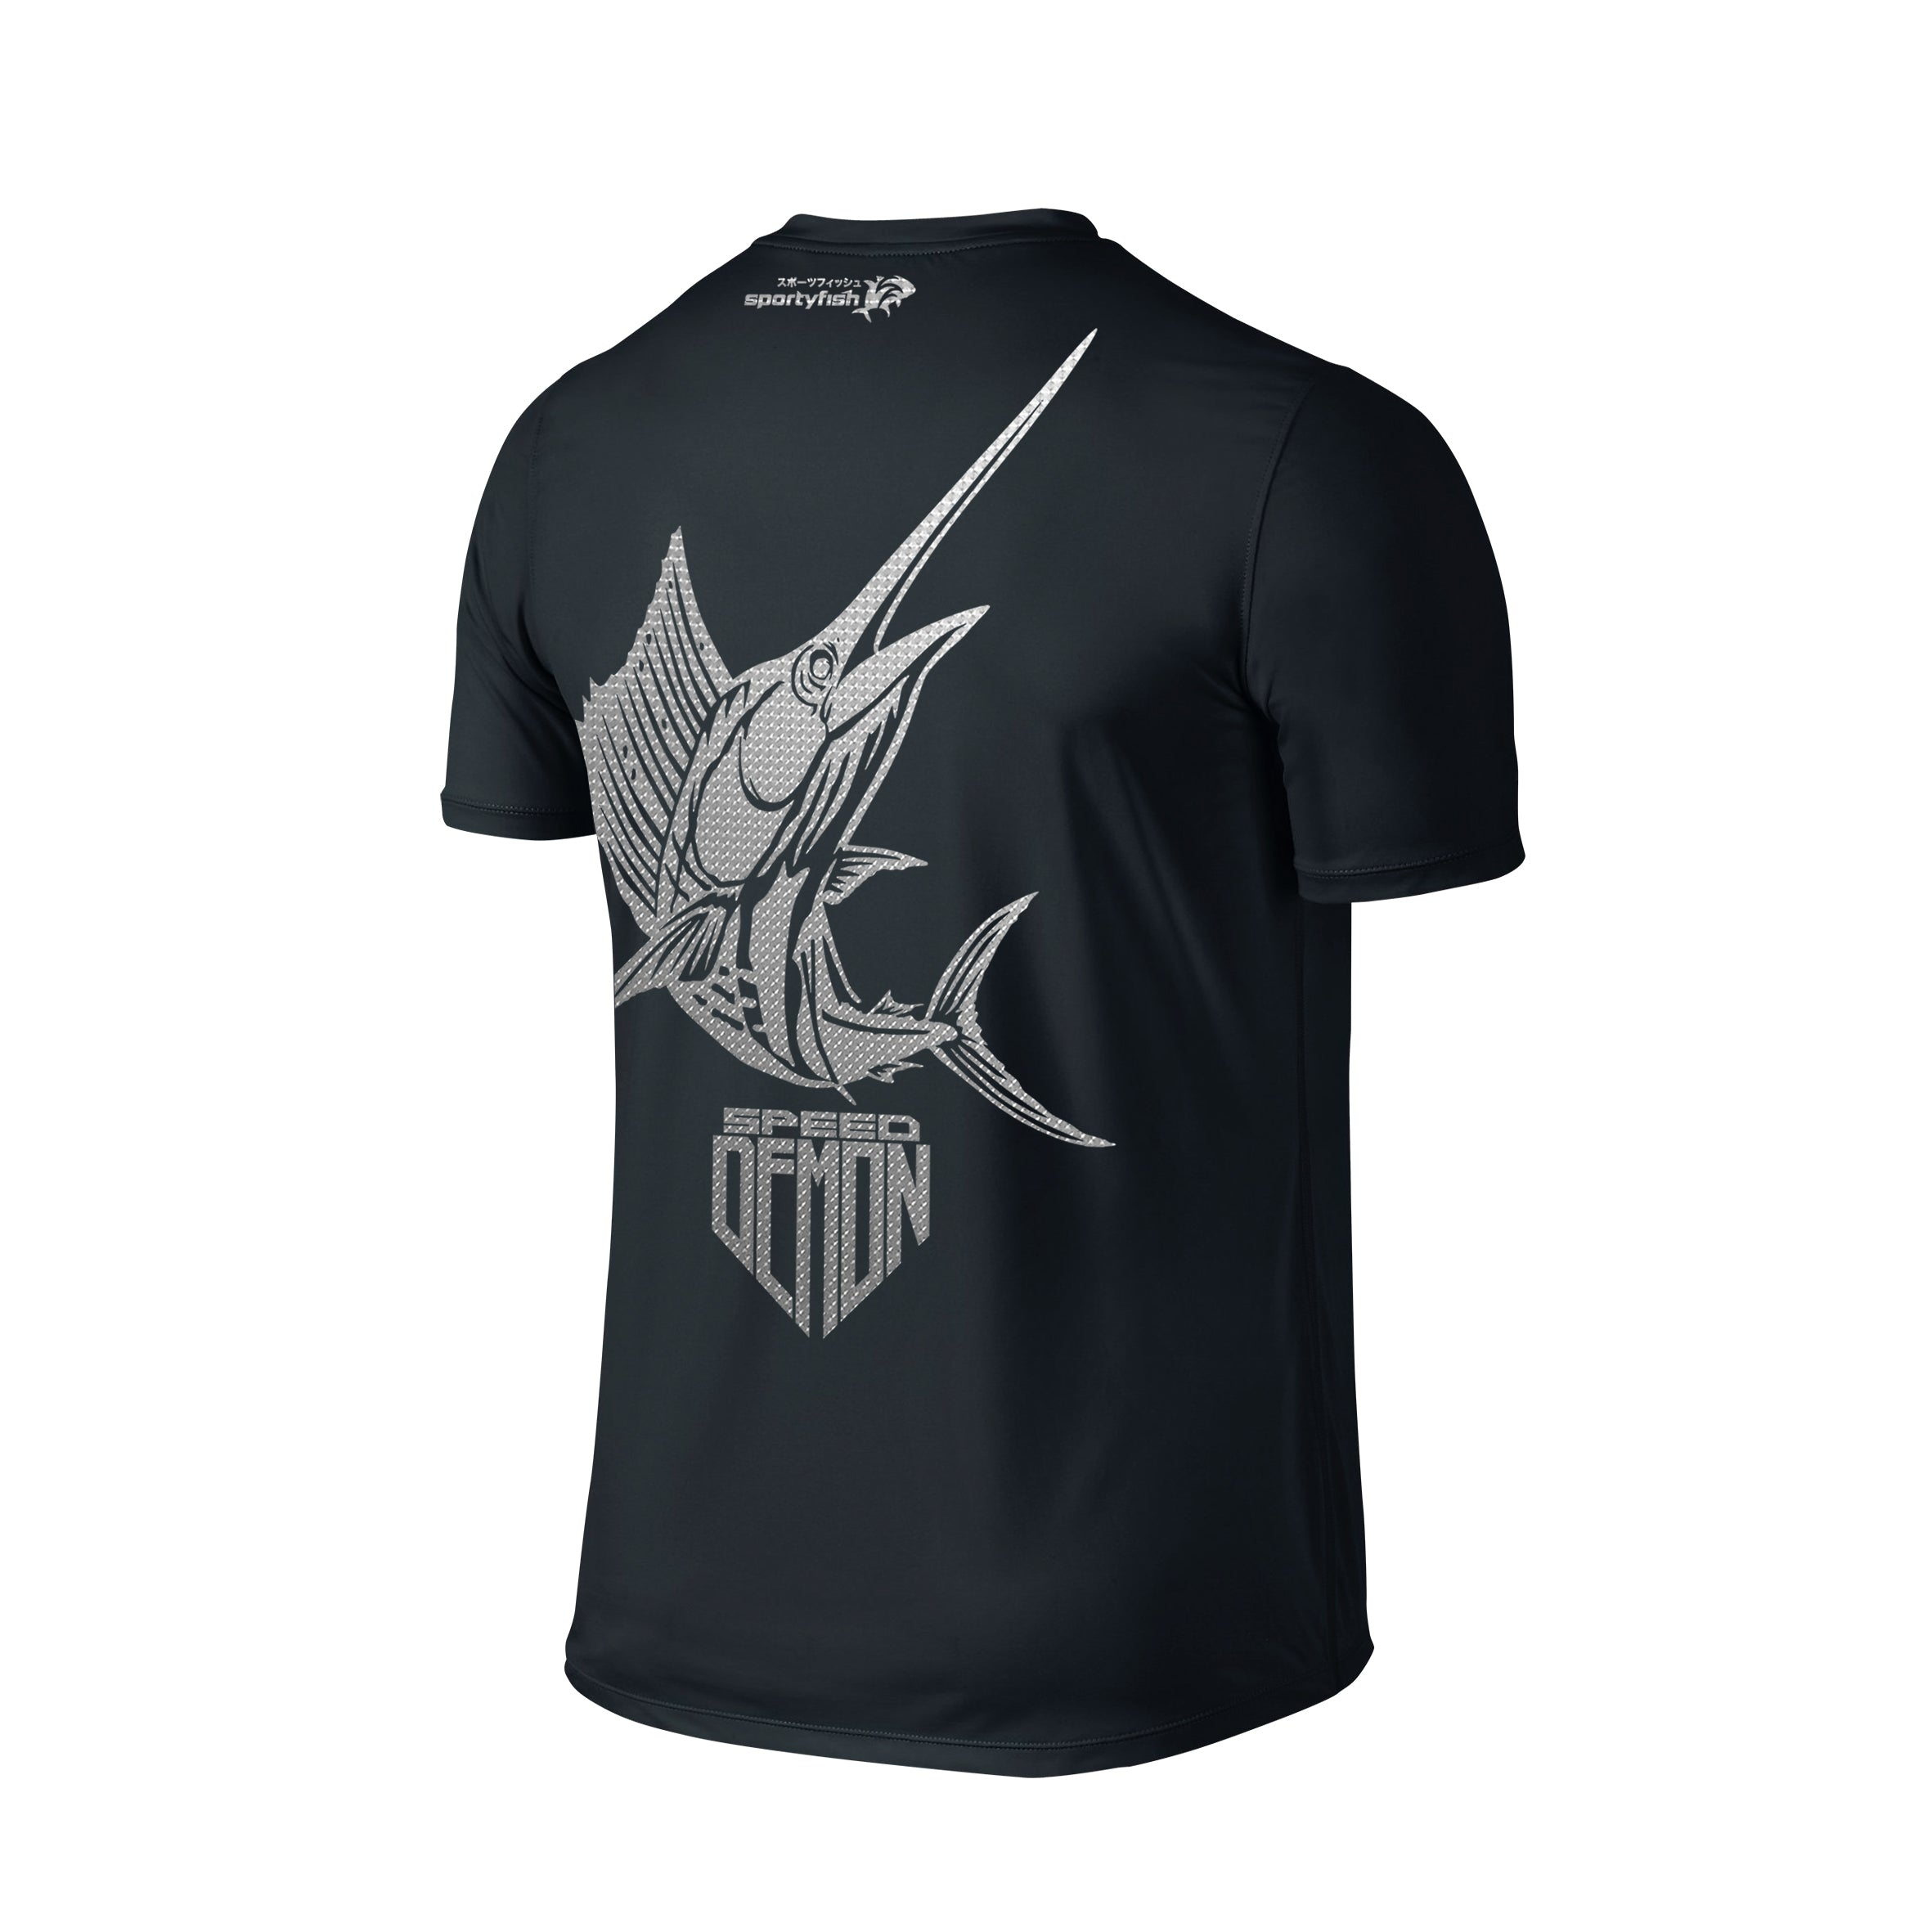 SportyFish Shield Series Classic Black T-shirt(back view) Silver Print: Atlantic Sailfish